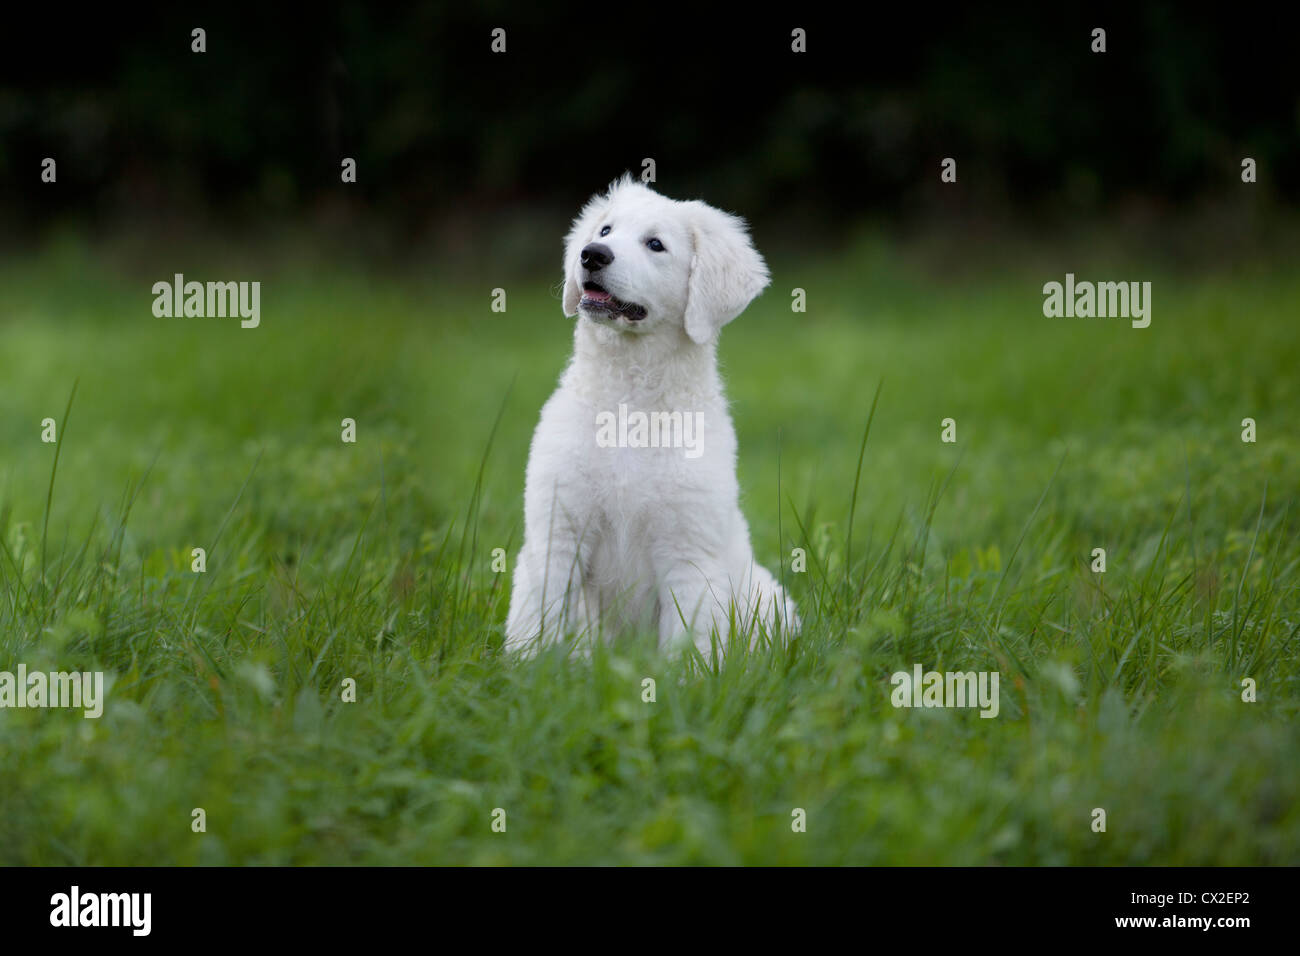 Kuvacz Hund Welpen puppies dog white sitting sitzend Wiese grün green grass aufmerksam attentively - Stock Image